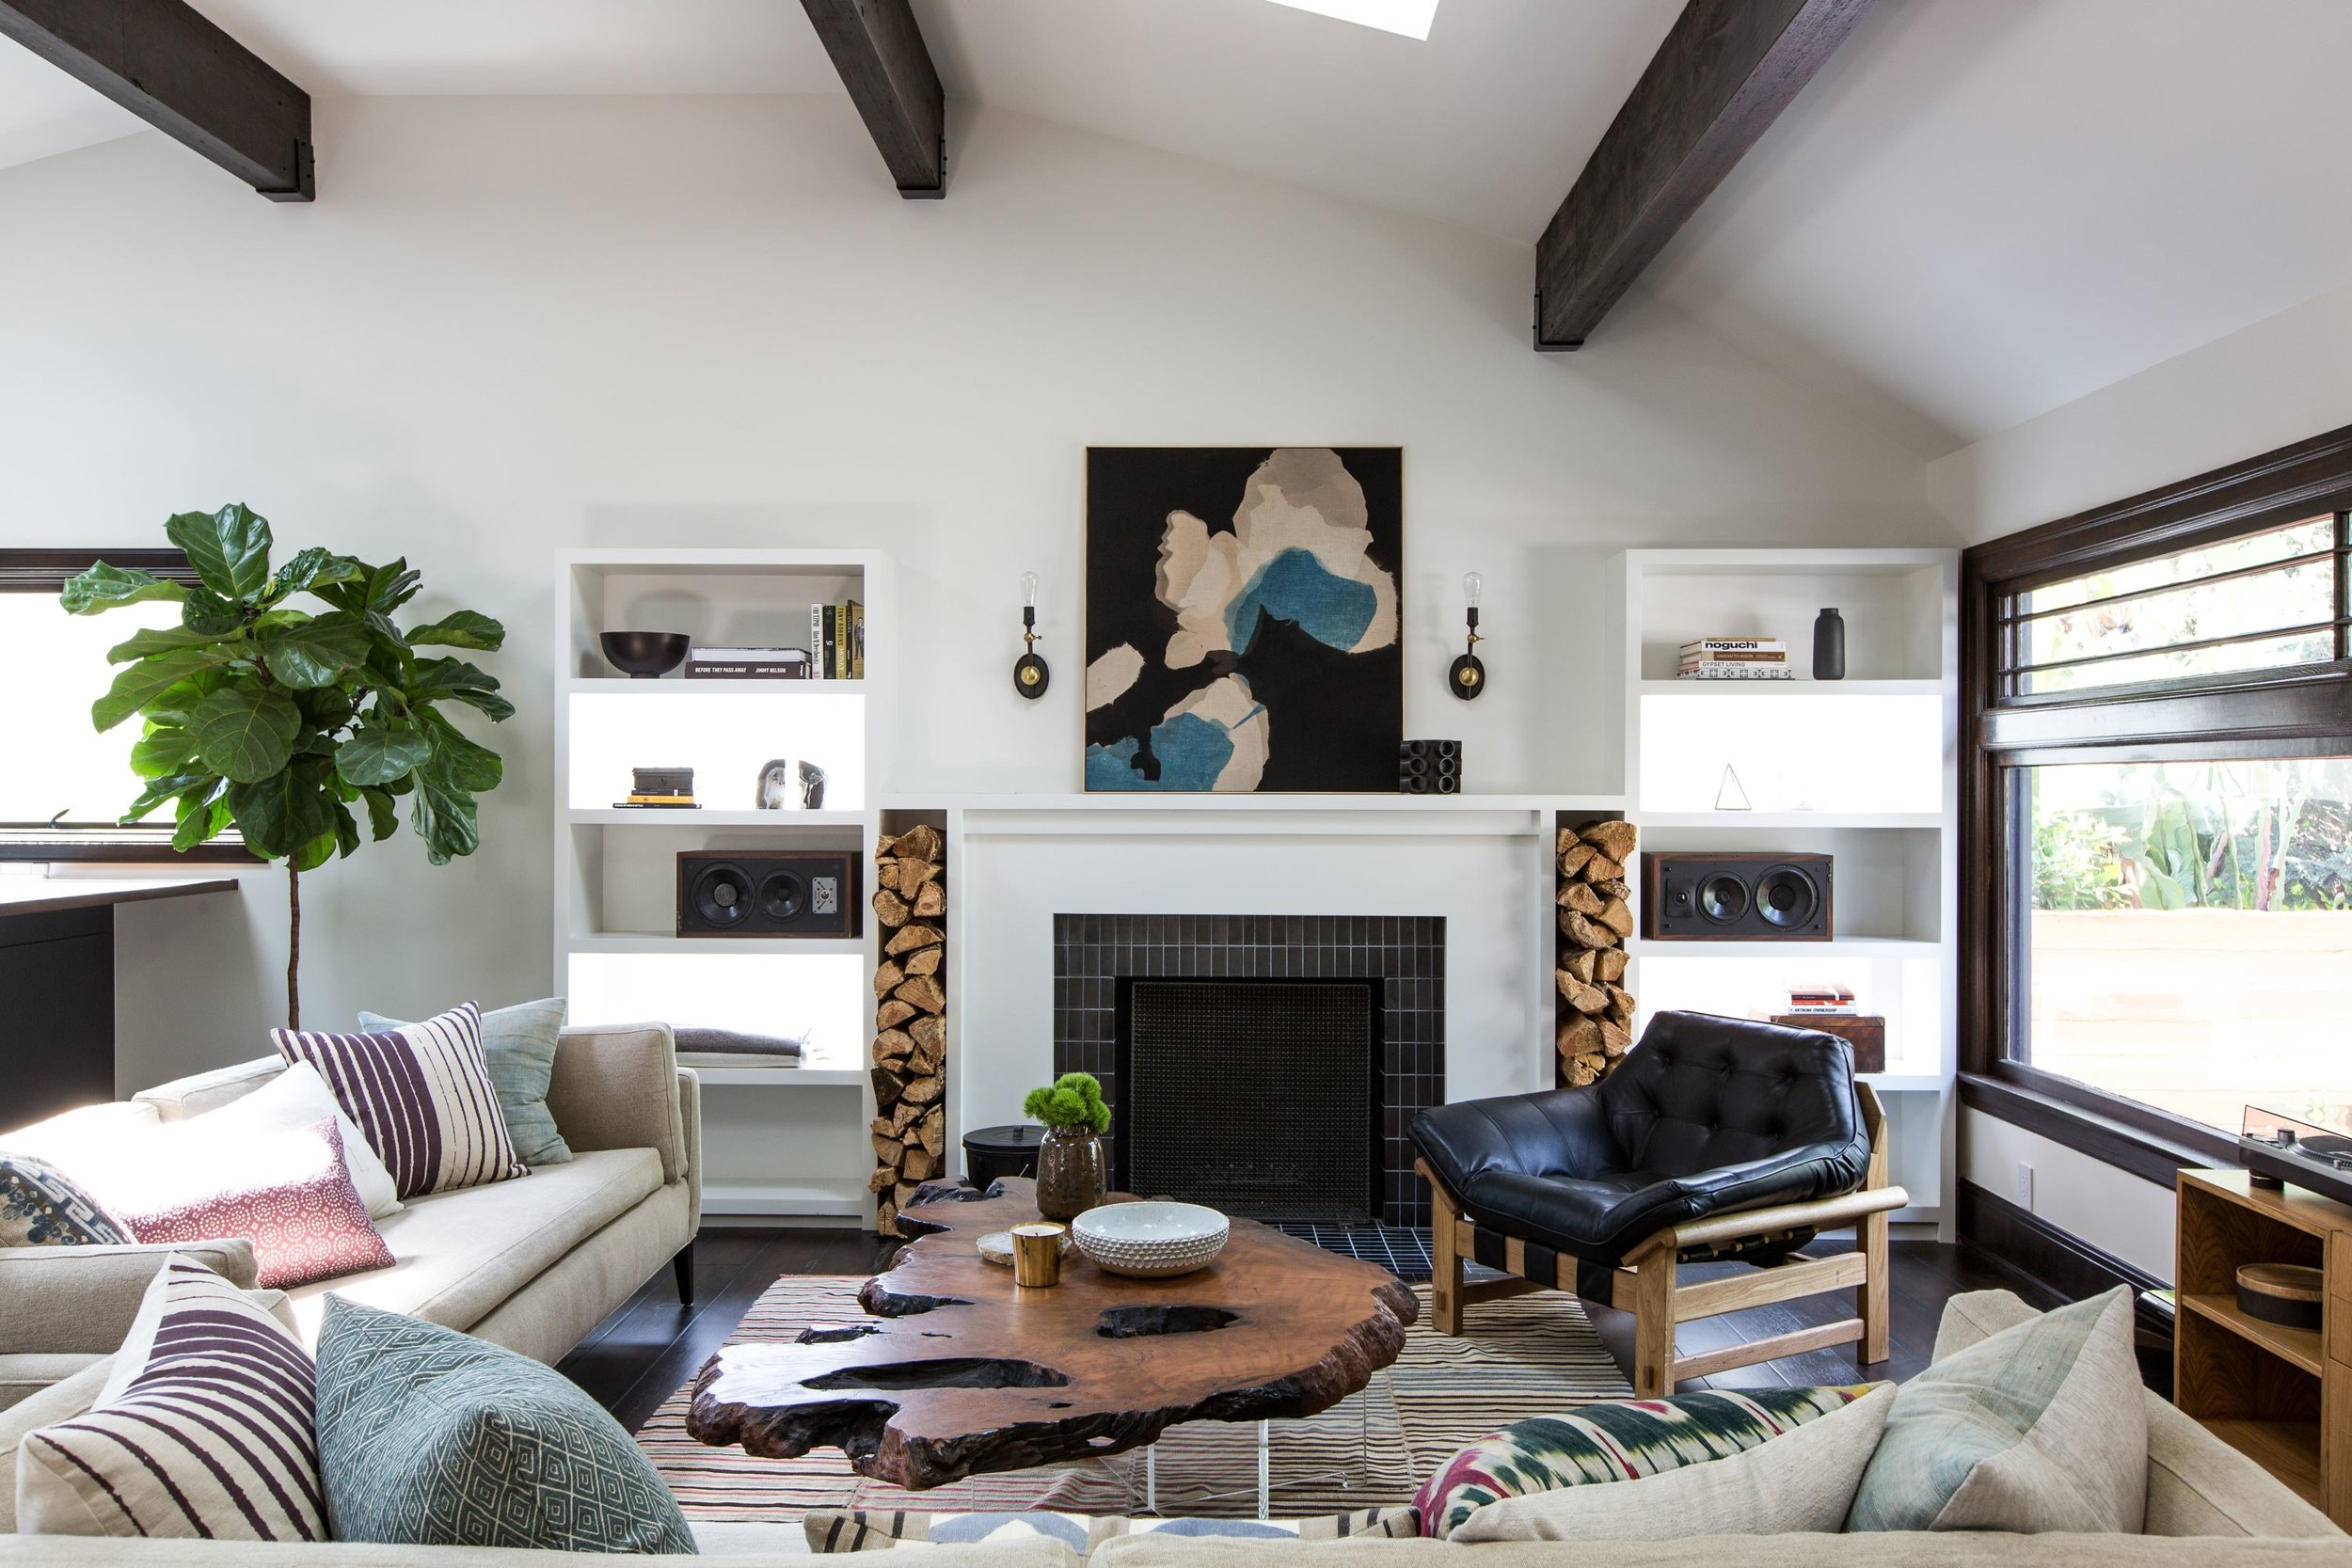 Architectural Digest: Tour a Hollywood Composer's 1920s L.A. Bungalow Designed by Brian Paquette